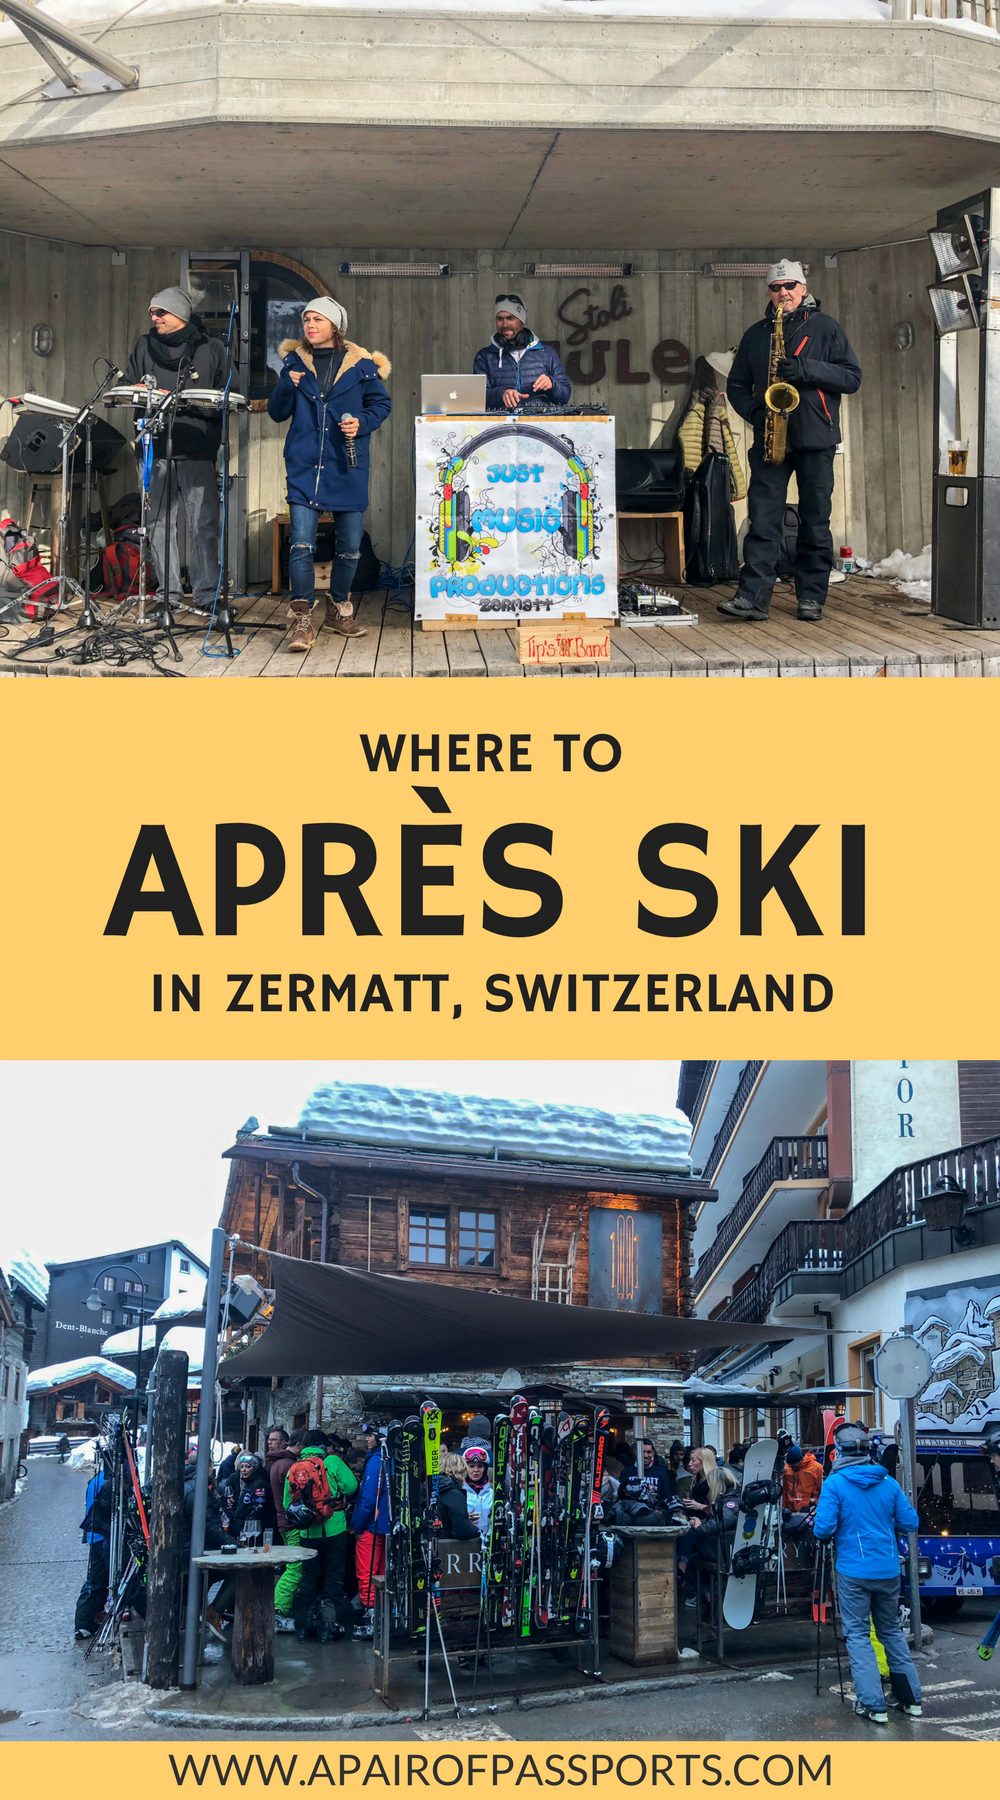 The Best Spots for Après Ski in Zermatt, Switzerland | Where to Après Ski in the Swiss Alps